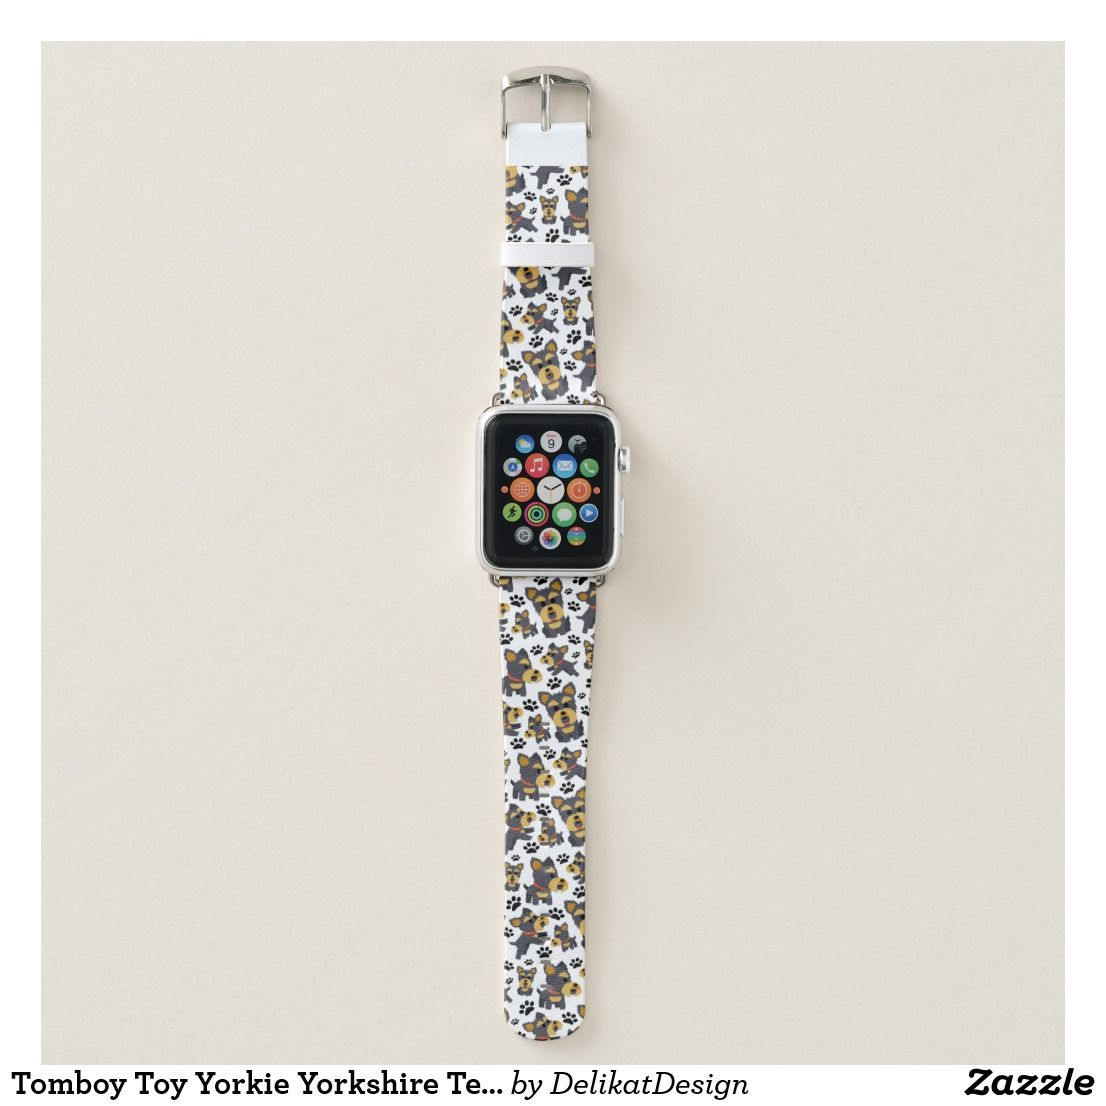 Tomboy Toy Yorkie Yorkshire Terrier Pet Puppy Dog Apple Watch Band